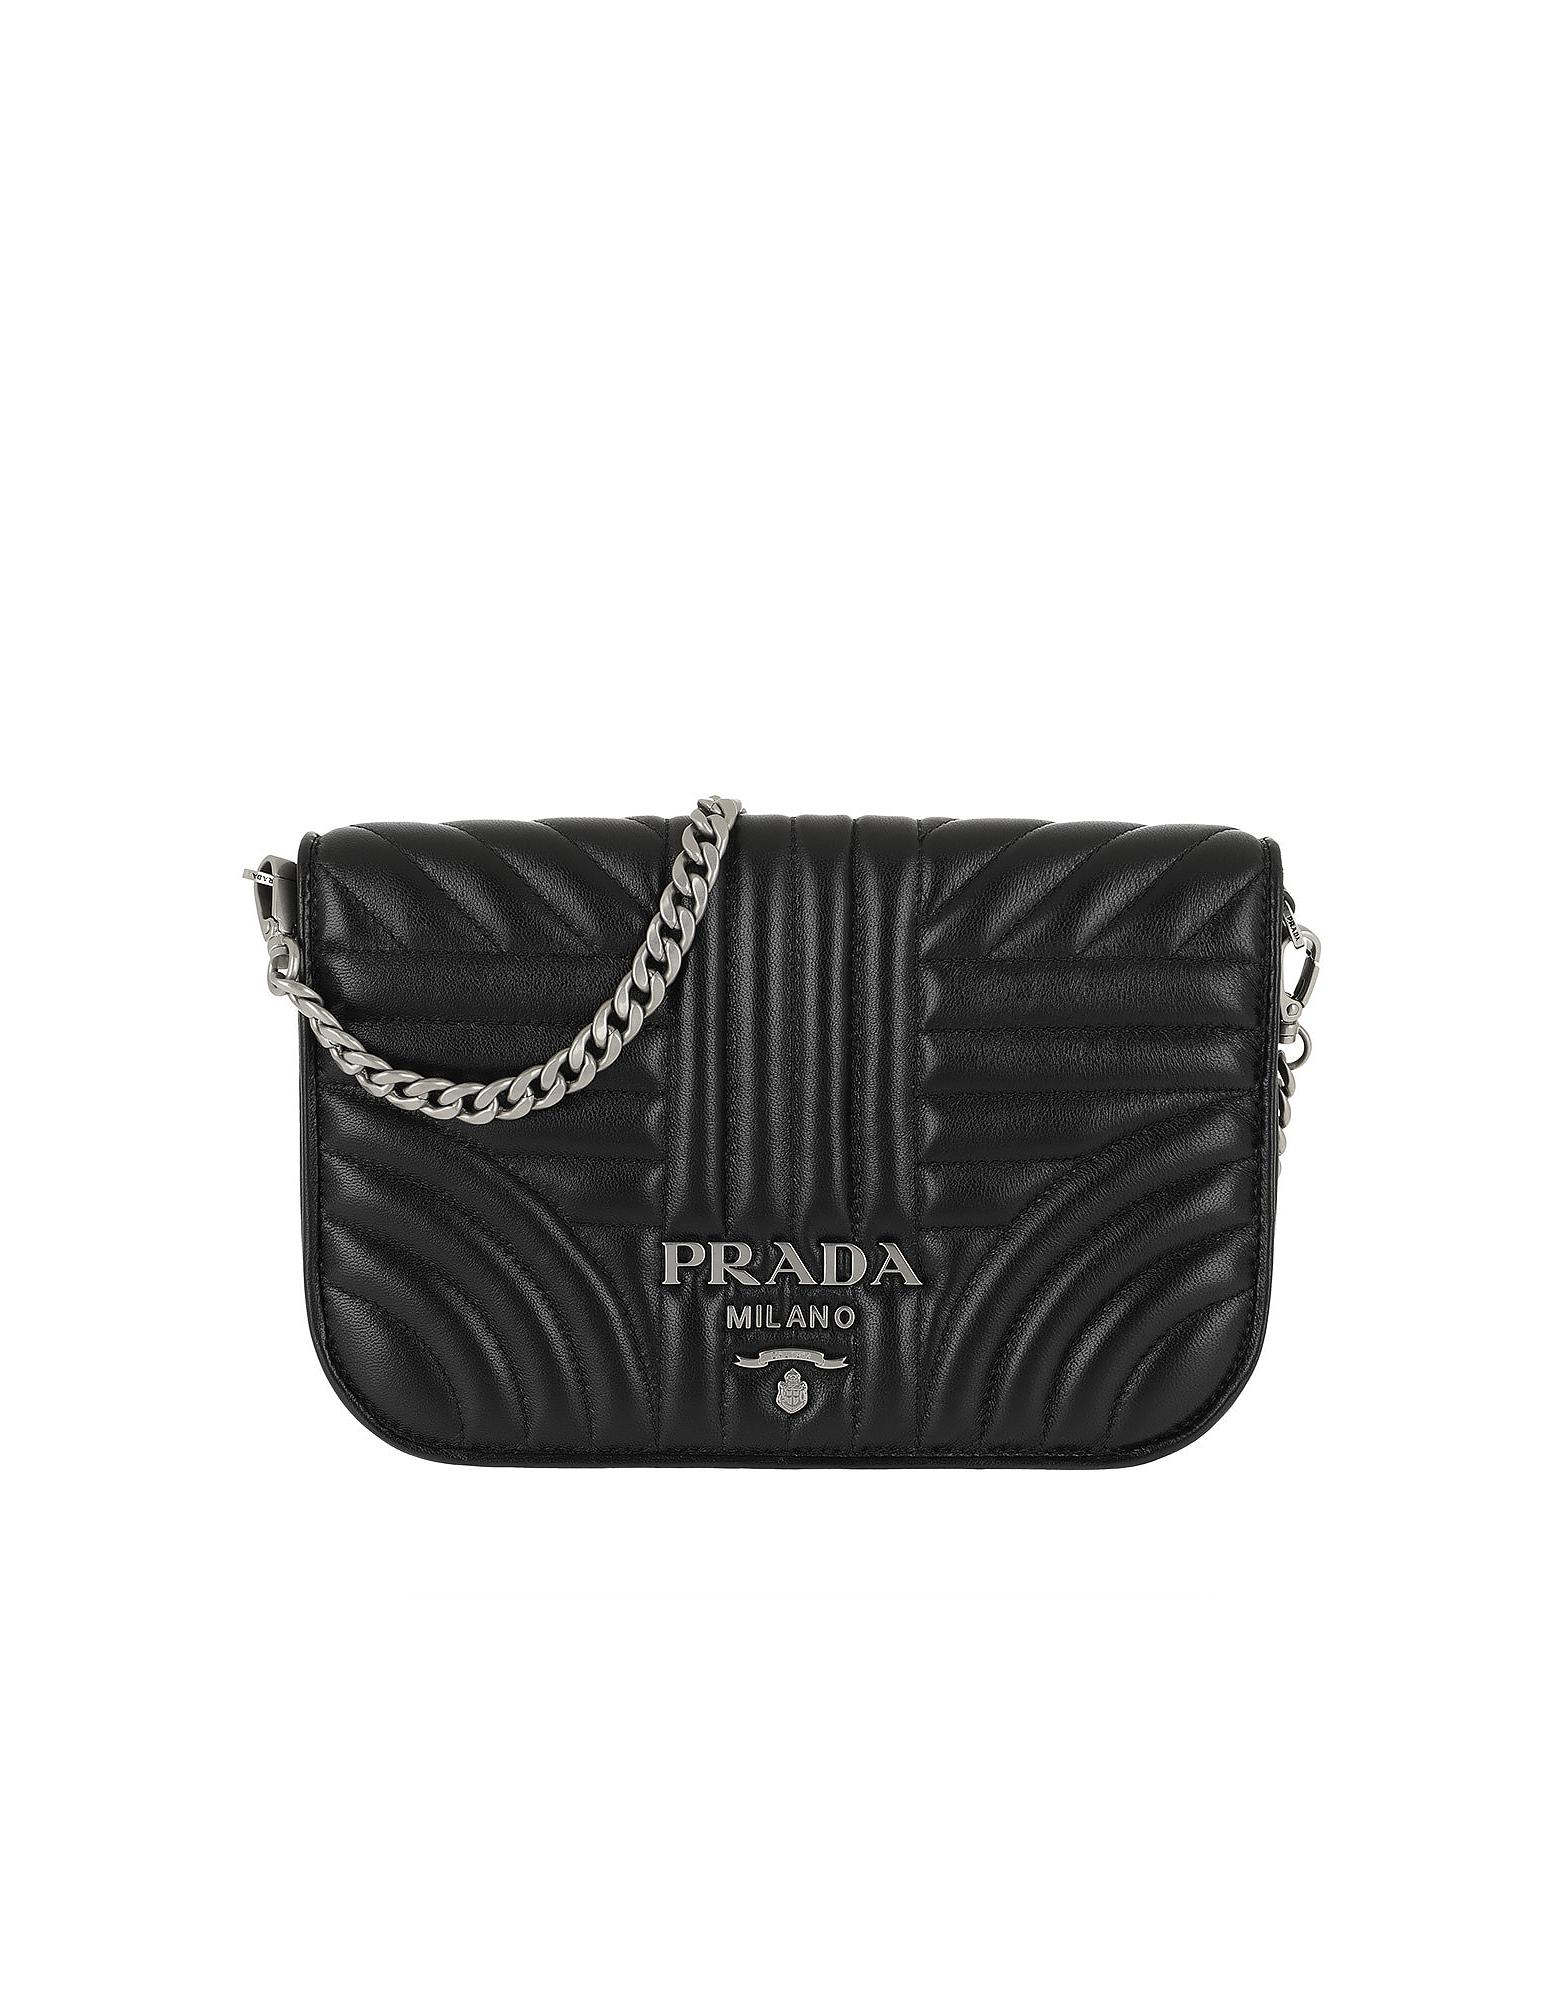 ed61cfee10b5a5 Prada Quilted Diagramme Nappa Leather Bag Black Silver in Black ...